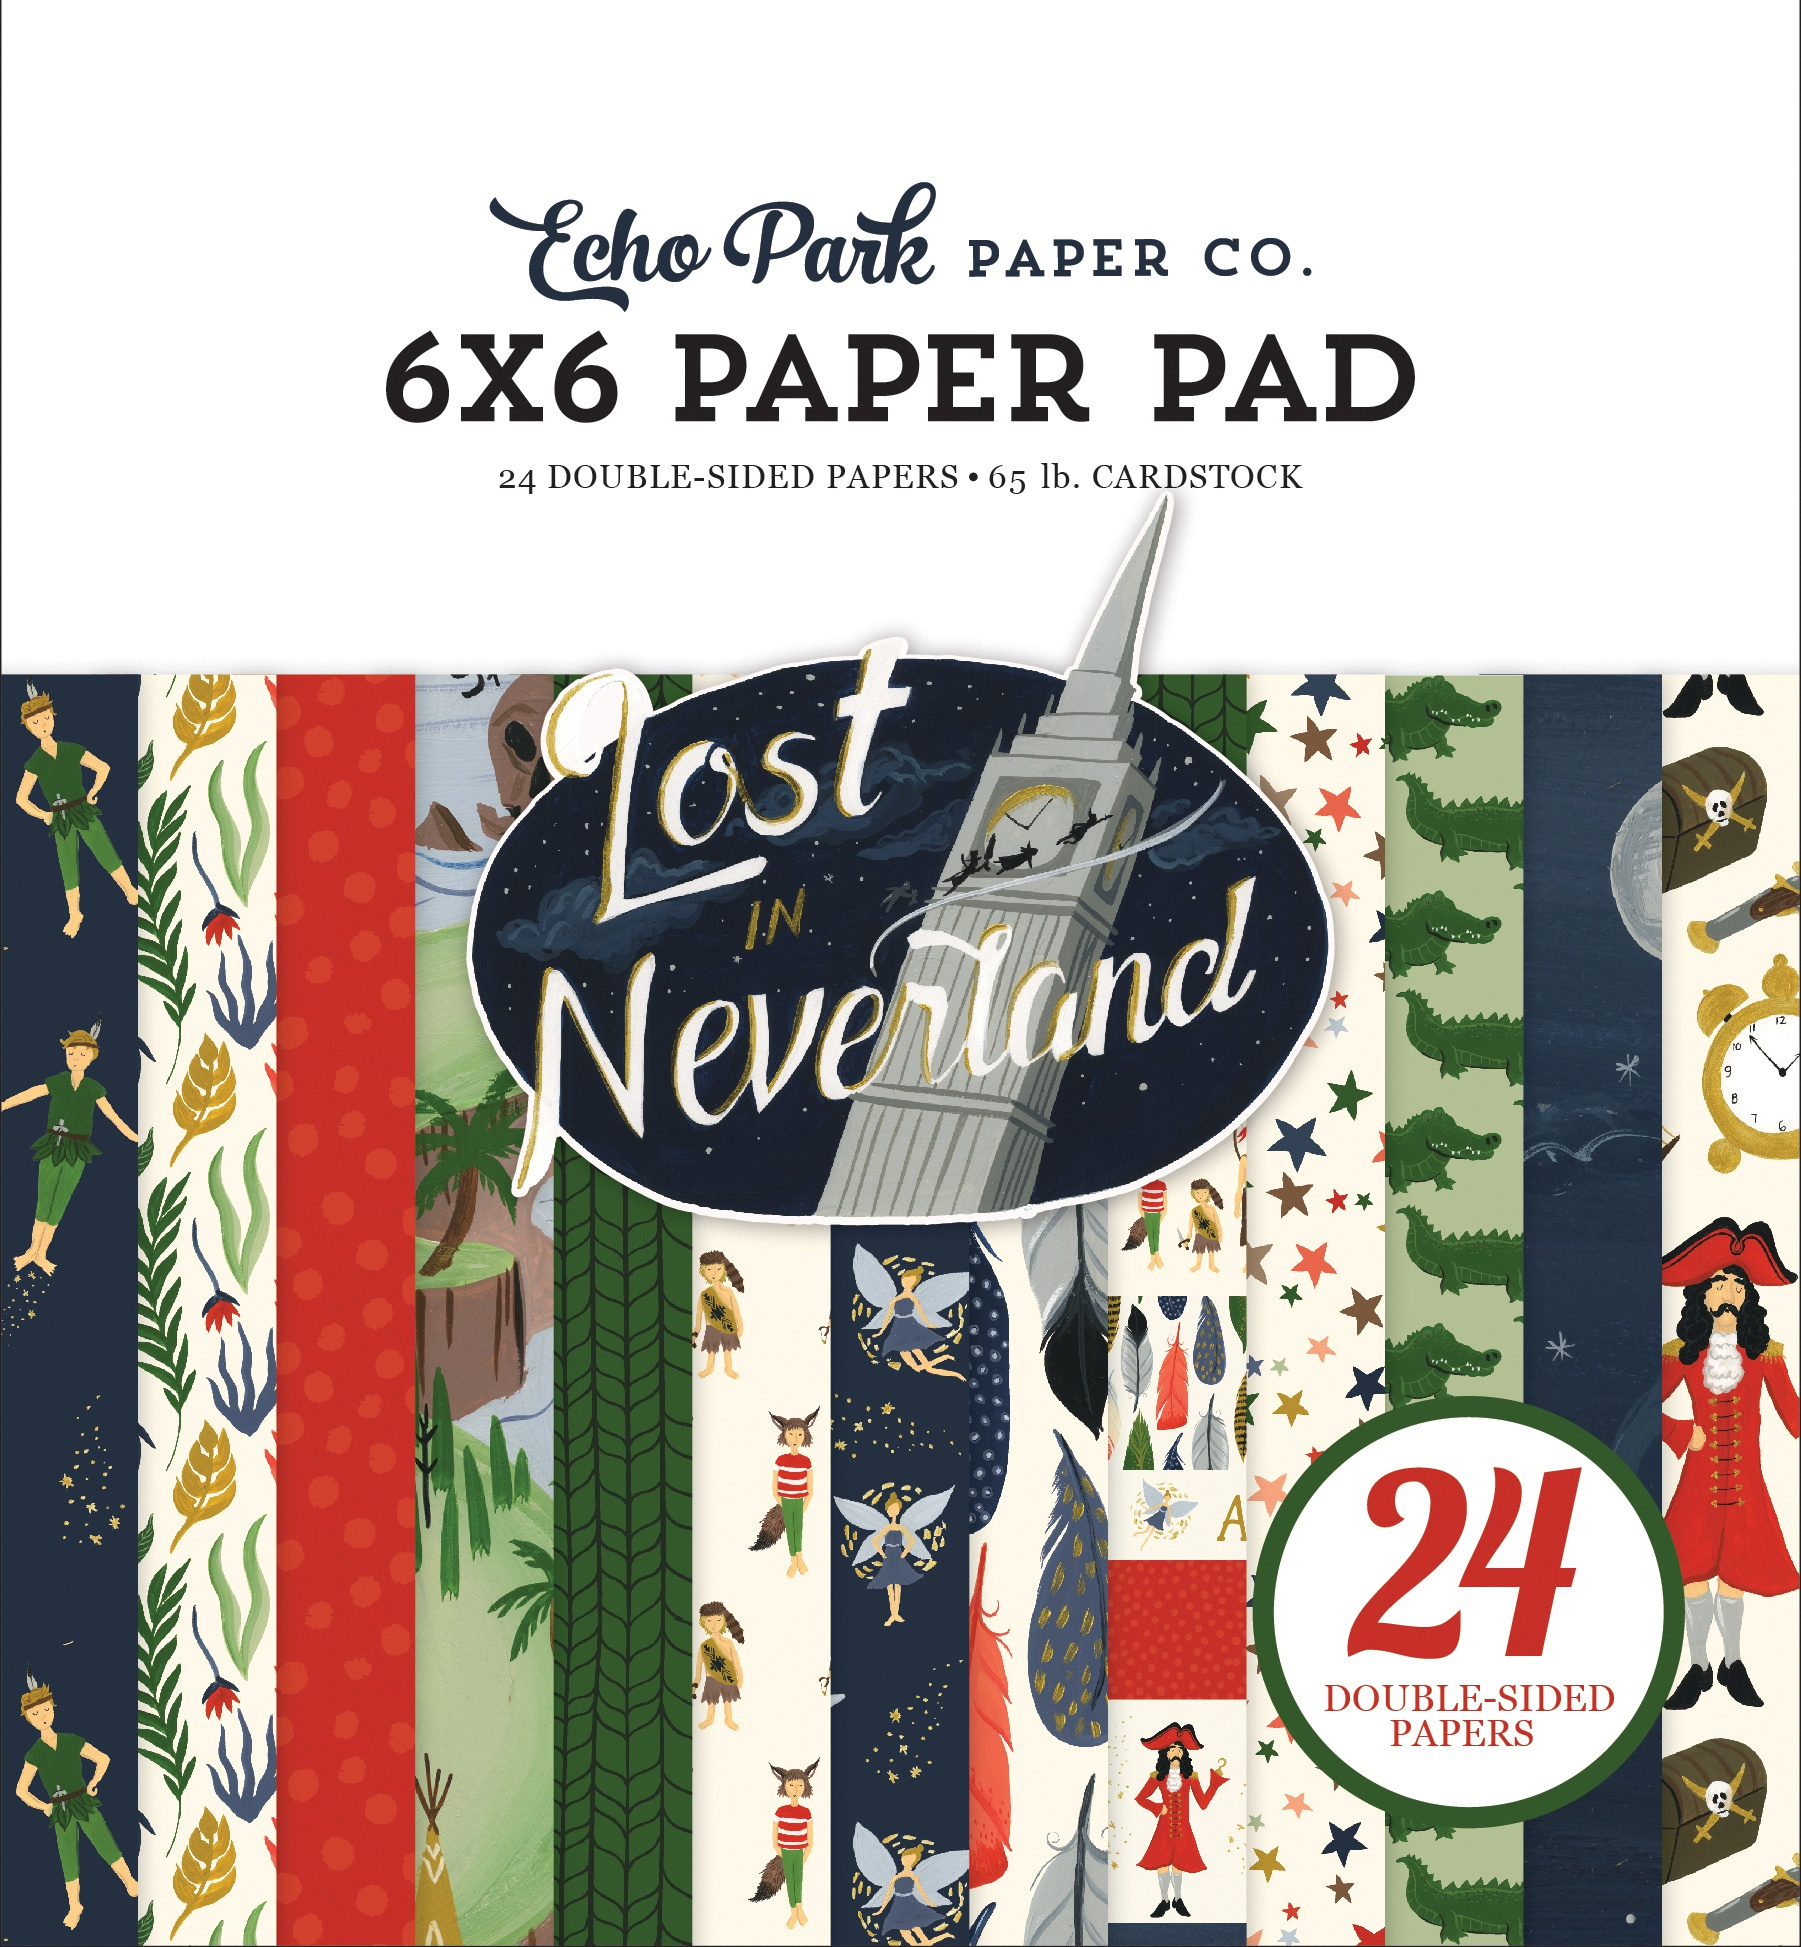 Echo Park Double-Sided Paper Pad 6X6 24/Pkg-Lost In Neverland, 12 Designs/2 Ea...